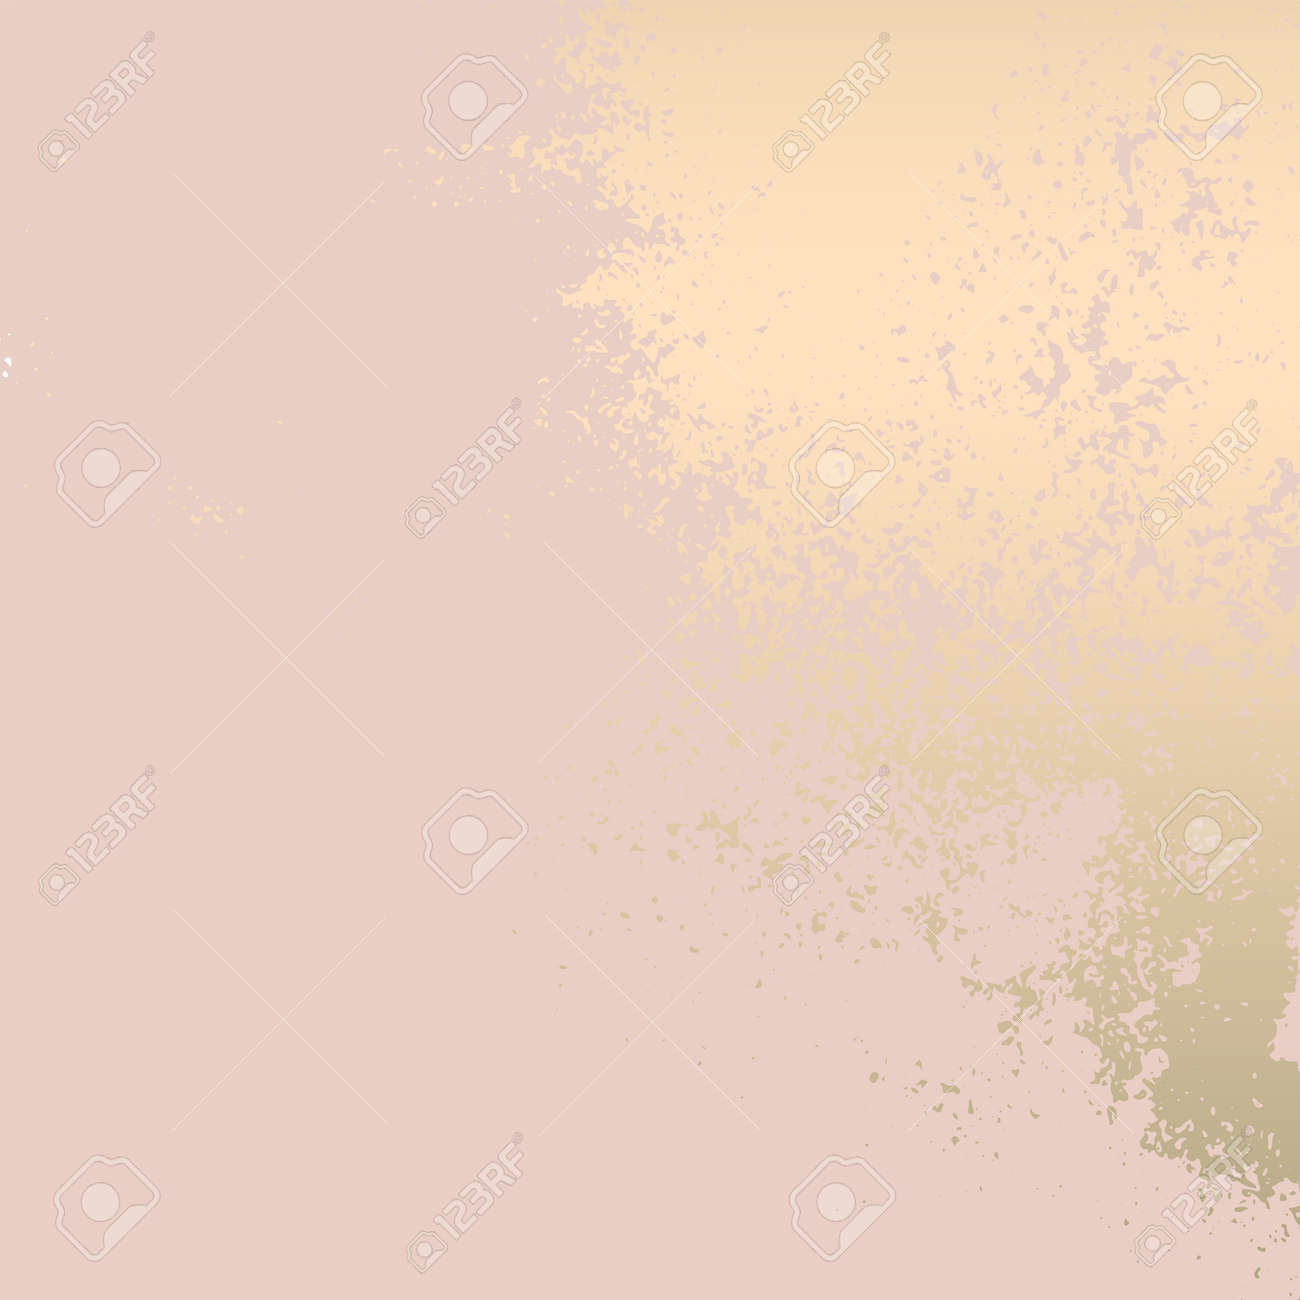 Trendy Blush Pink Gold Feminine Pastel Texture Background For Royalty Free Cliparts Vectors And Stock Illustration Image 127957219